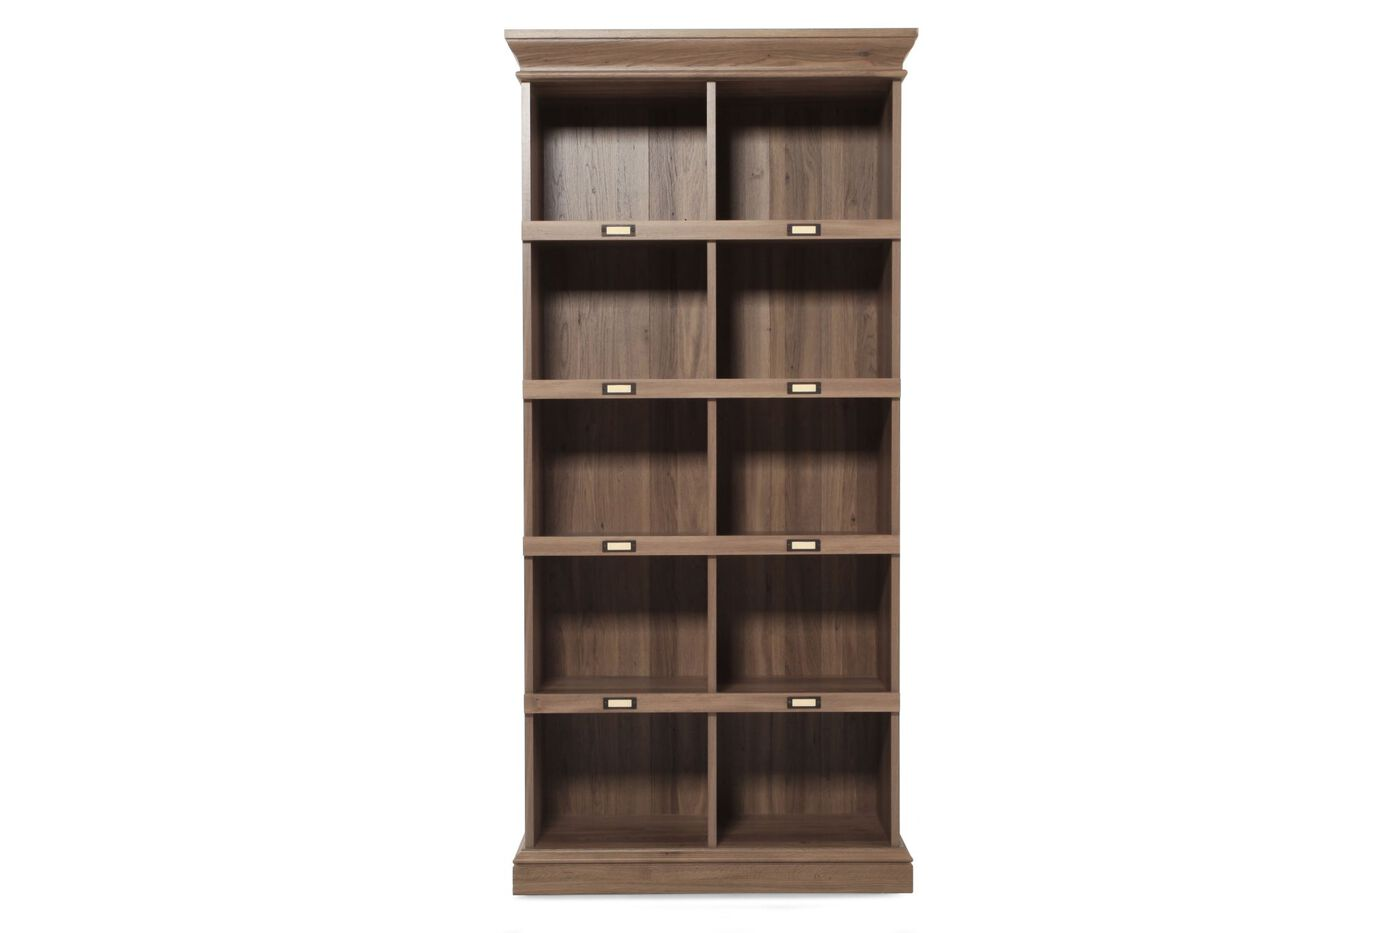 amazing ameriwood white lane home stackable with barrister headboard aaron livingroom sliding doors queen glass bookshelf altra bookcase metal